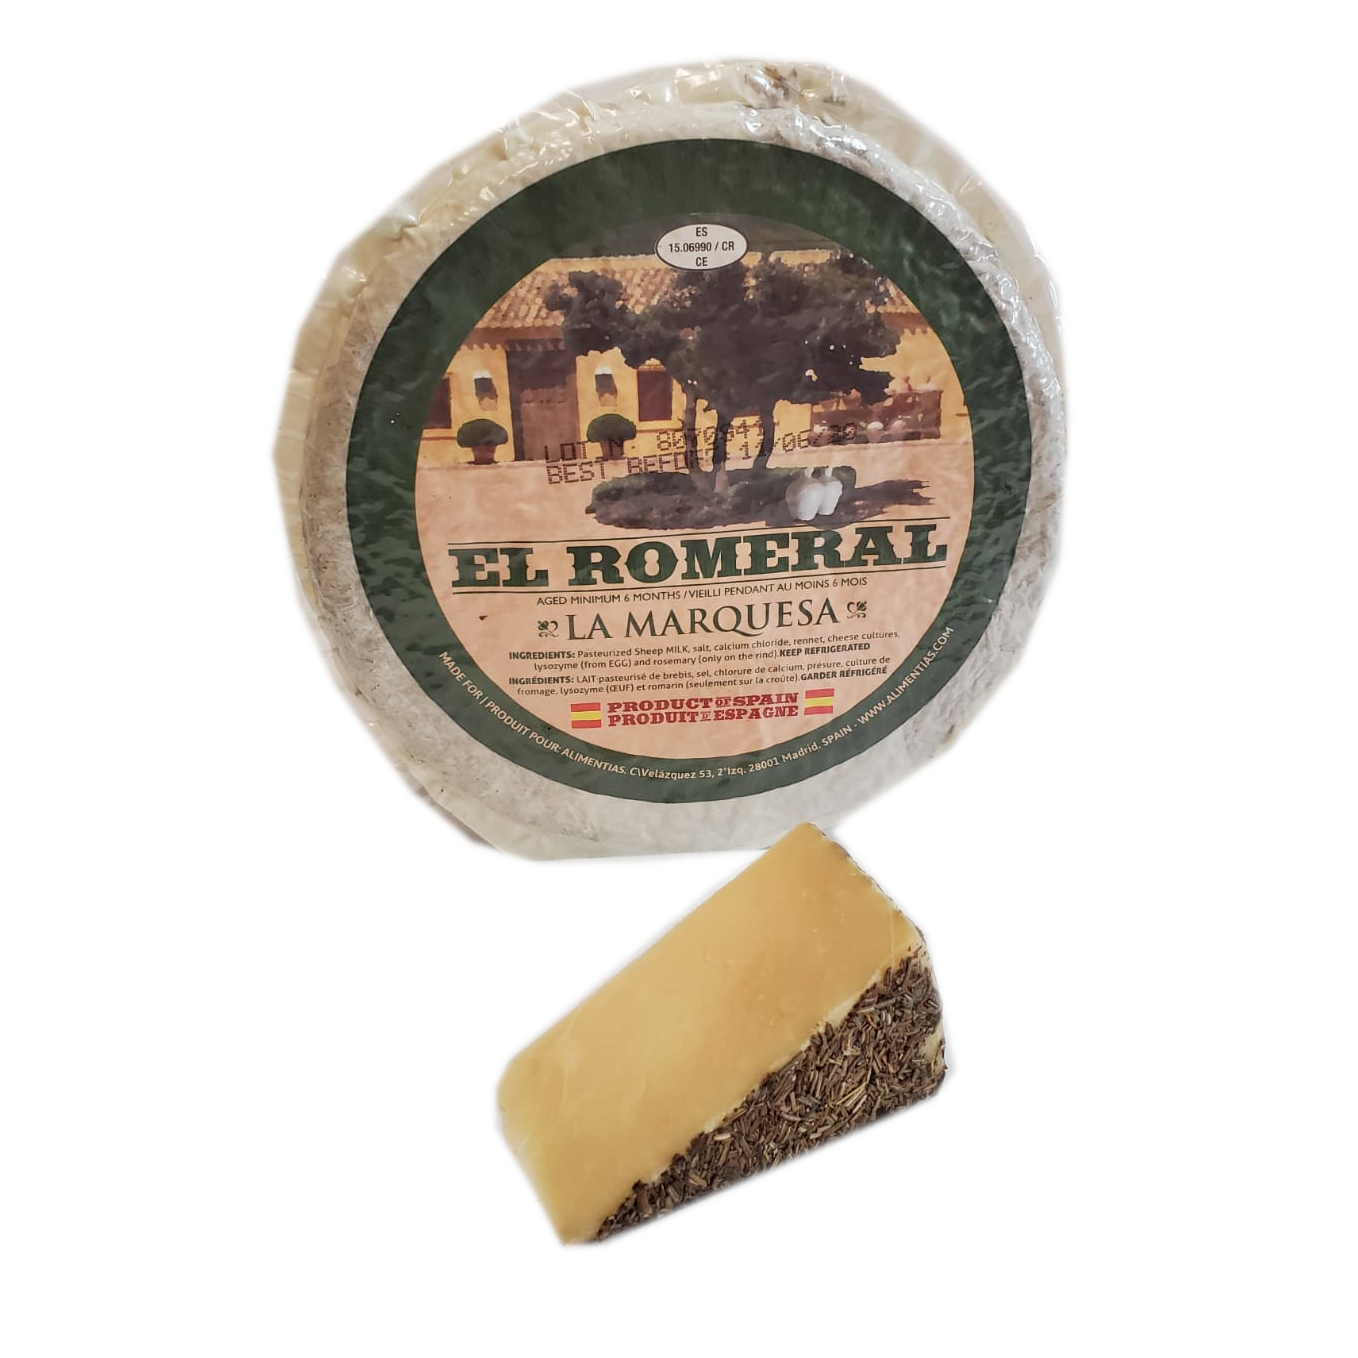 MANCHEGO WITH ROSEMARY AGED RM SPAIN